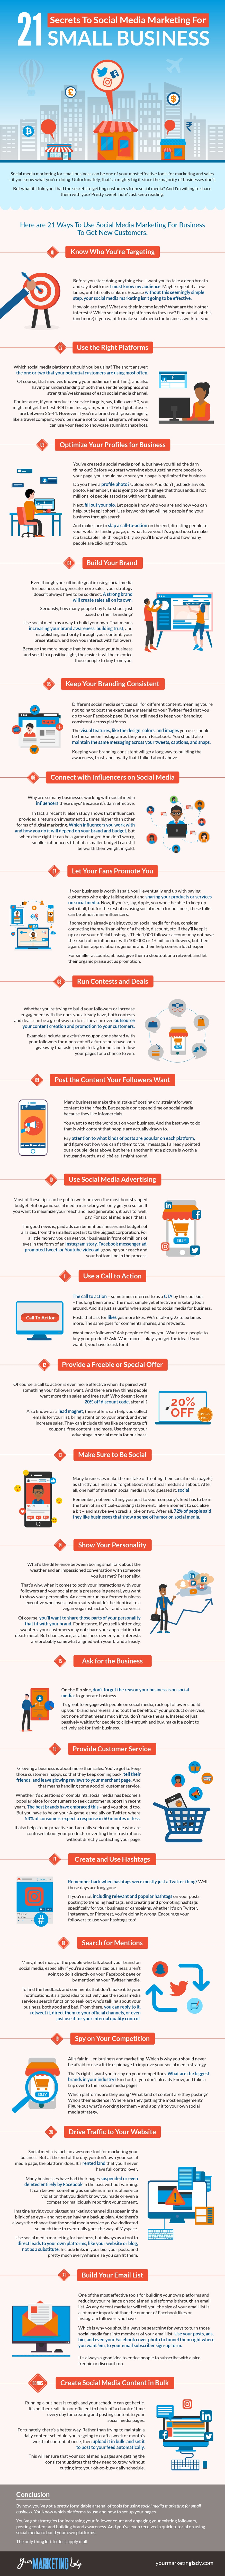 how to use social media marketing for small businesses infographic